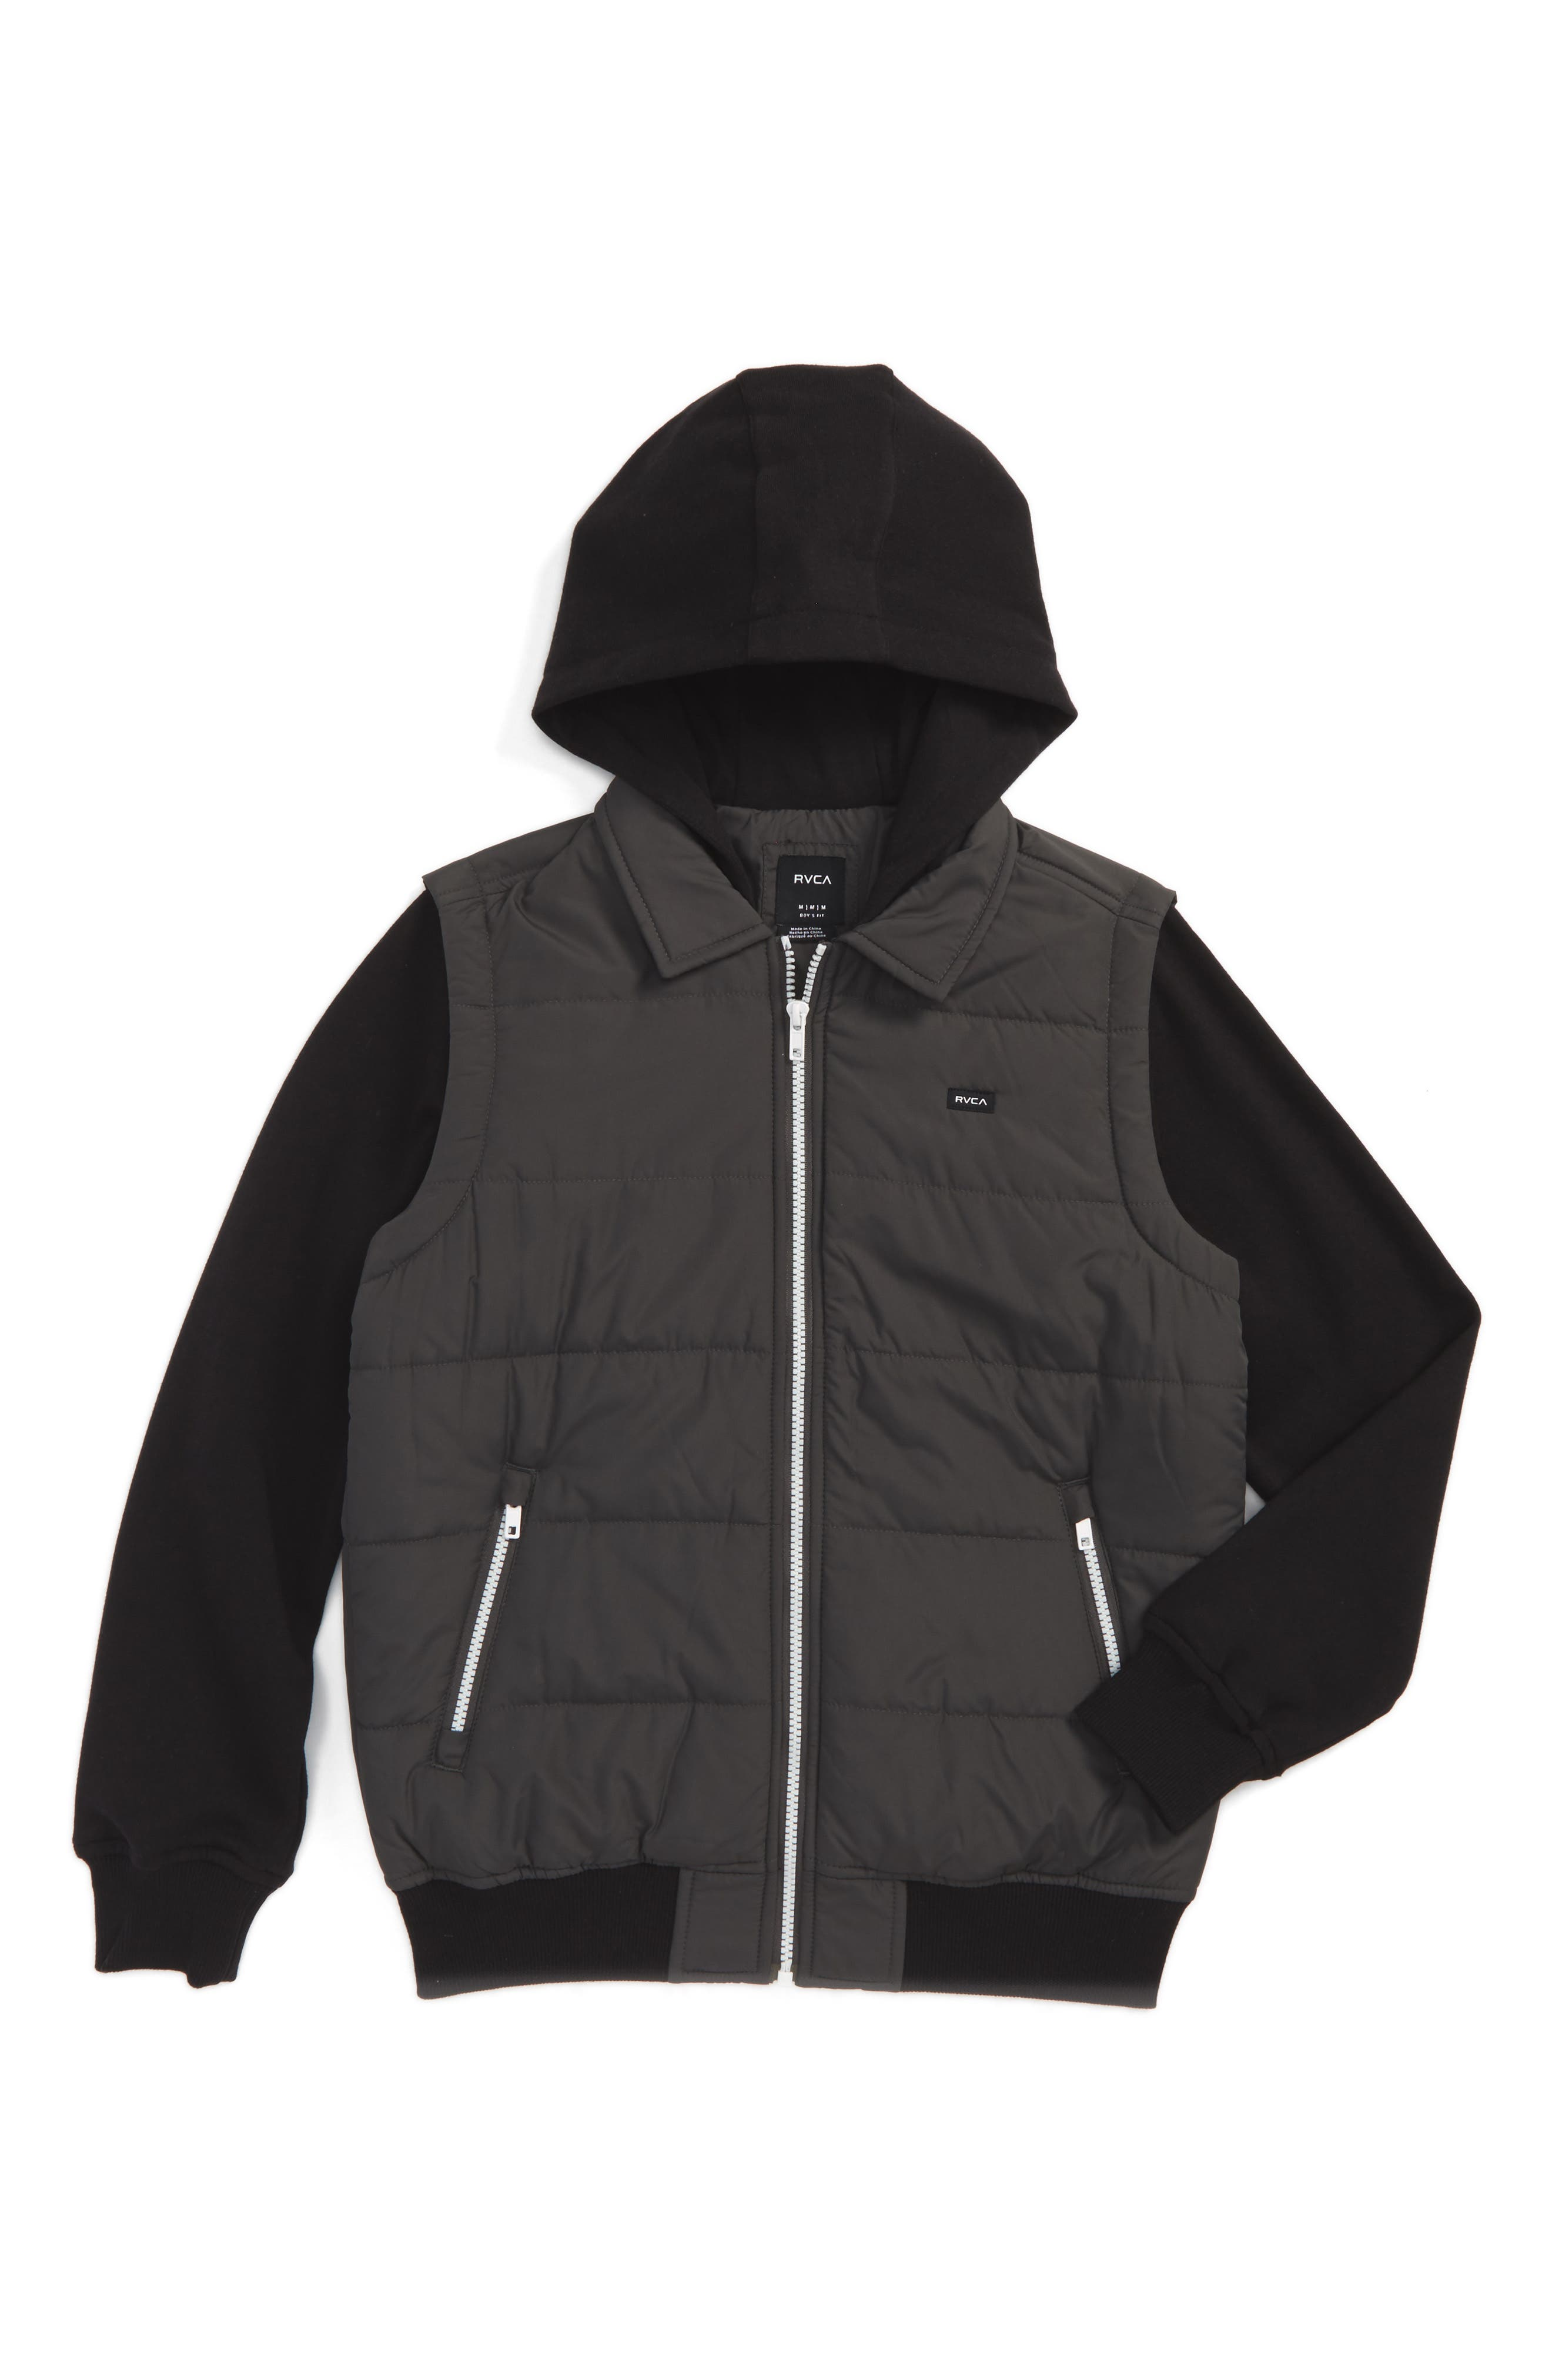 Puffer Jacket,                         Main,                         color, Black/ Charcoal